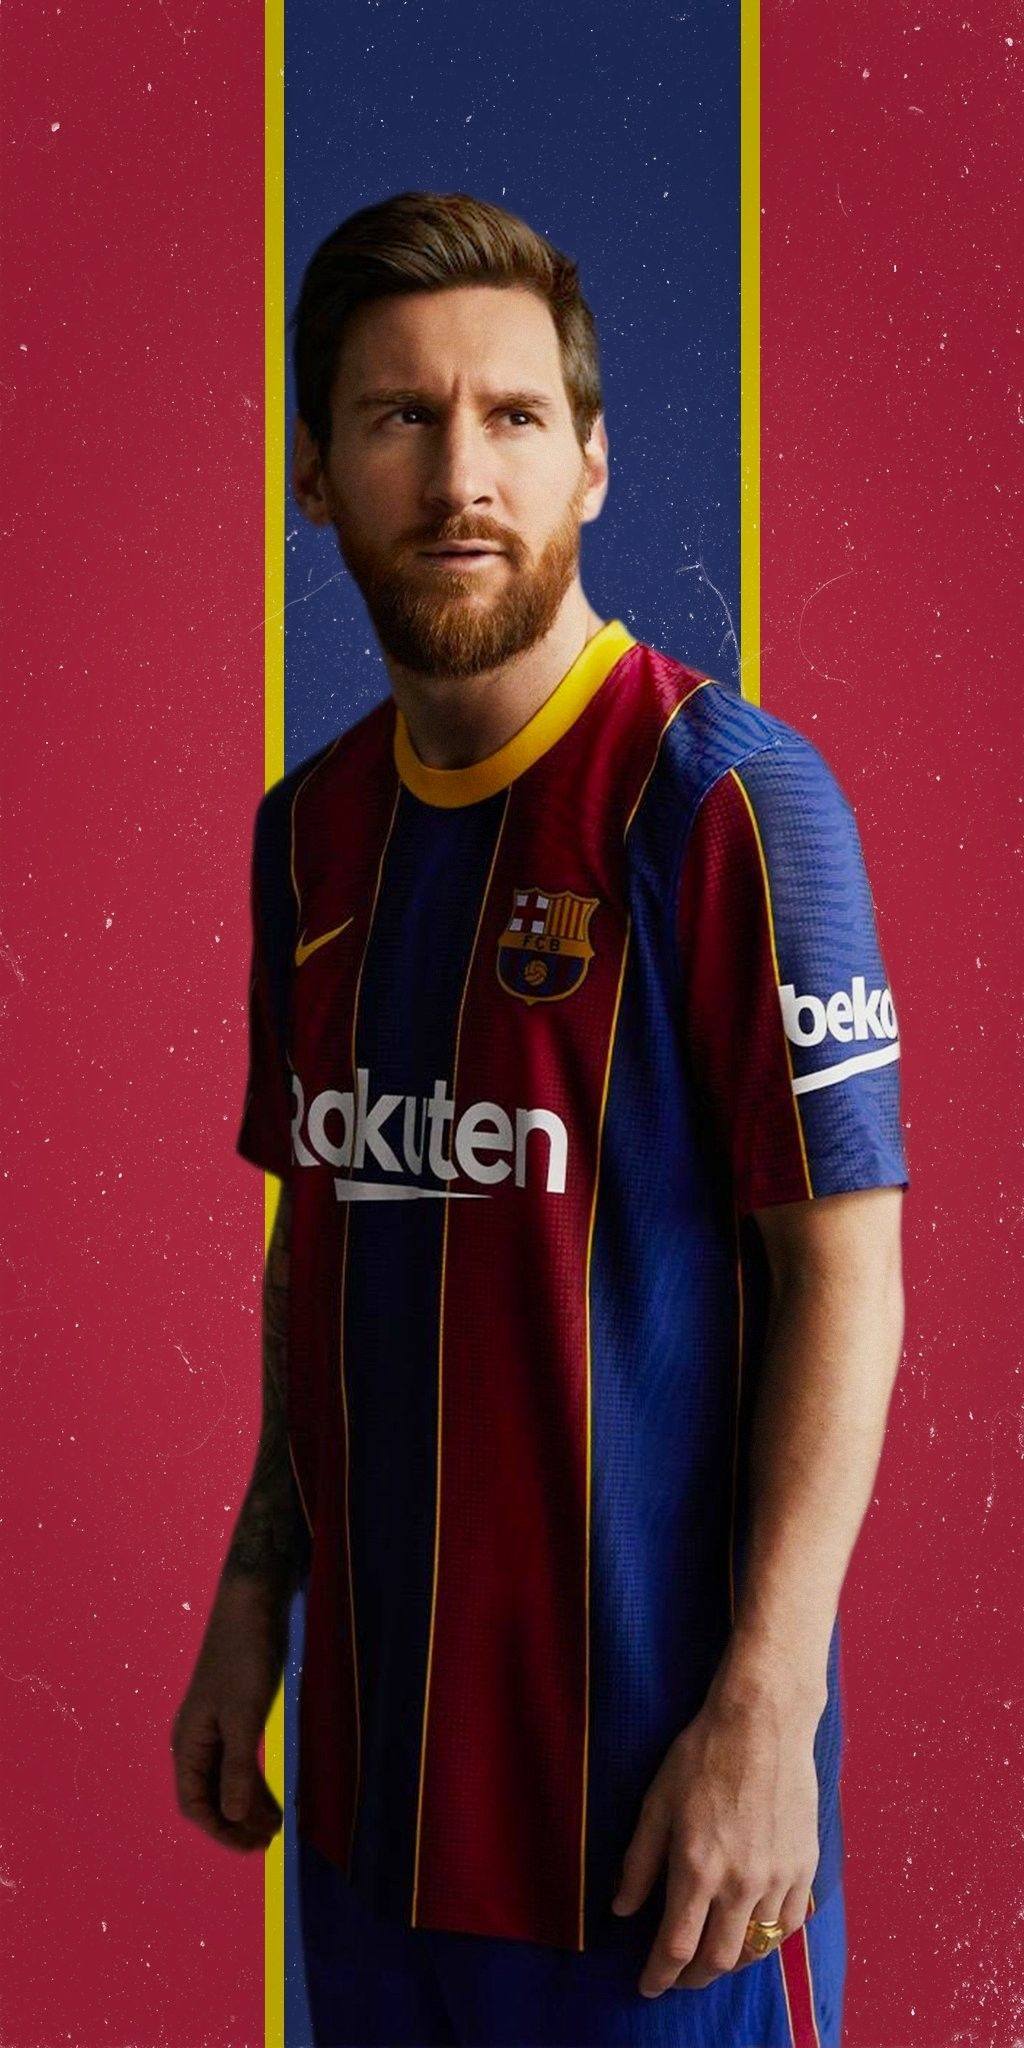 Pin By Mara Gonzalez On Leo Messi In 2020 Lionel Messi Messi Lionel Messi Barcelona